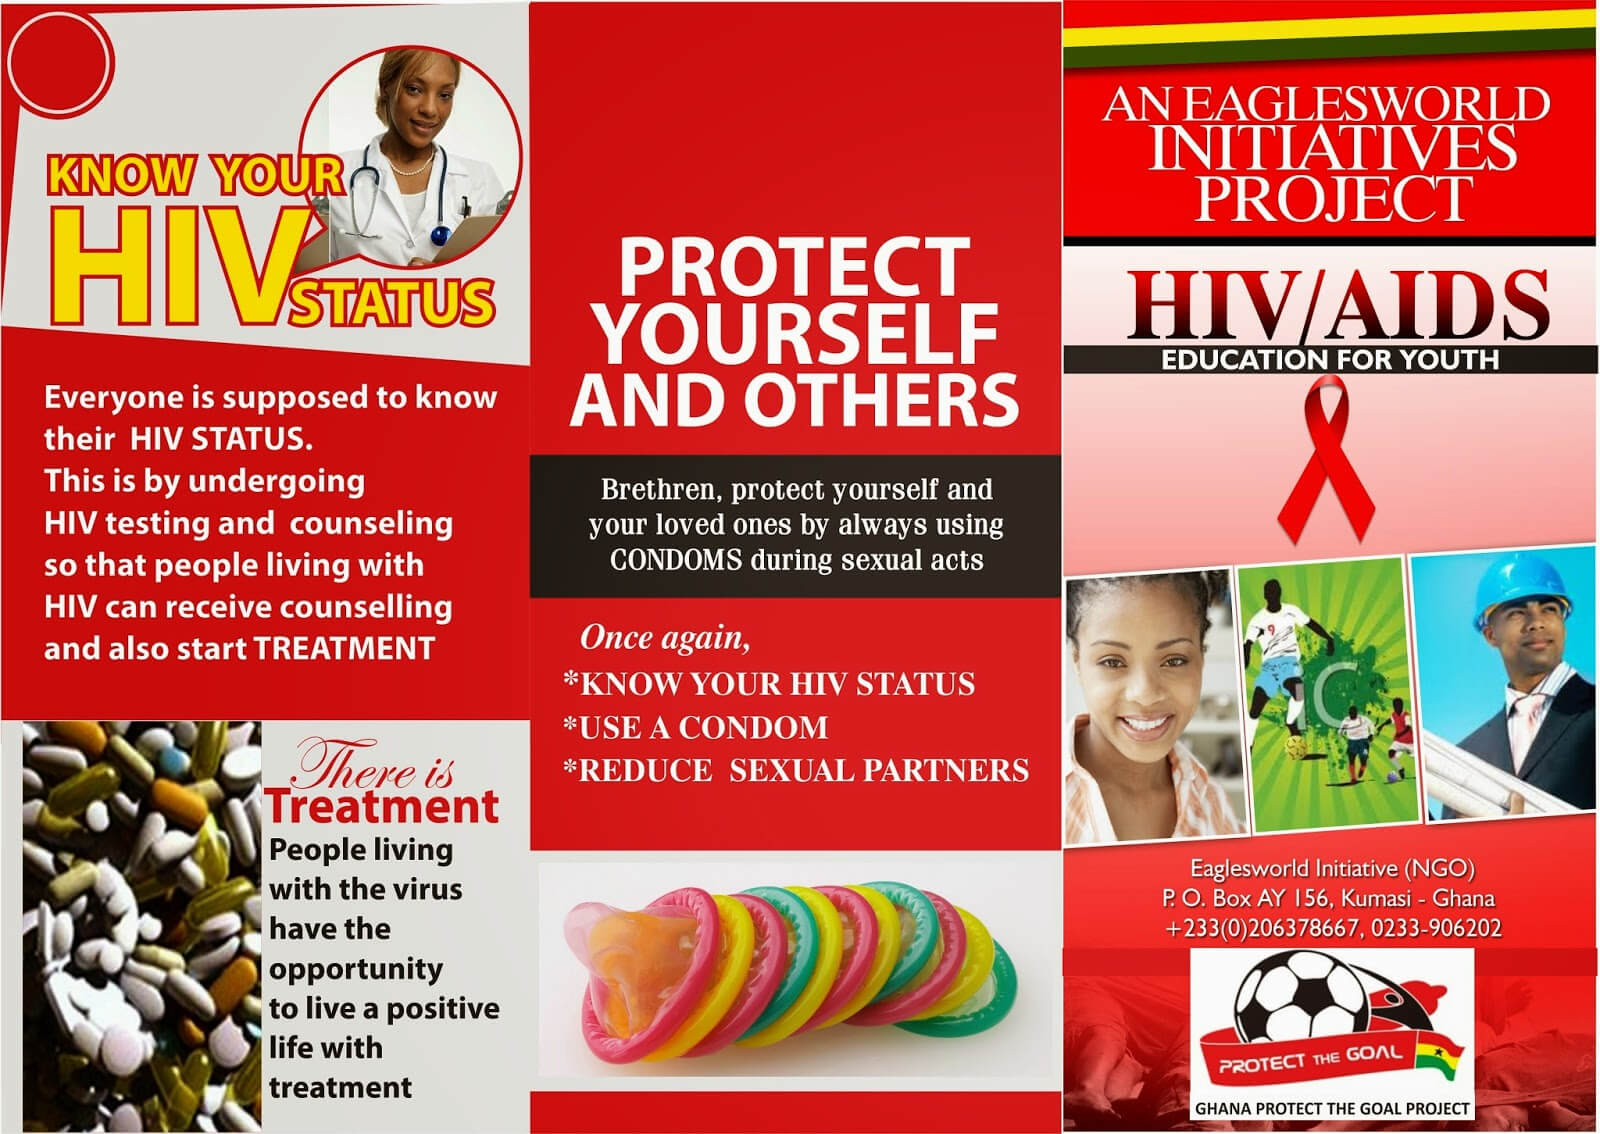 8 Best Photos Of Hiv Brochure Template - Hiv Aids Brochure Intended For Hiv Aids Brochure Templates